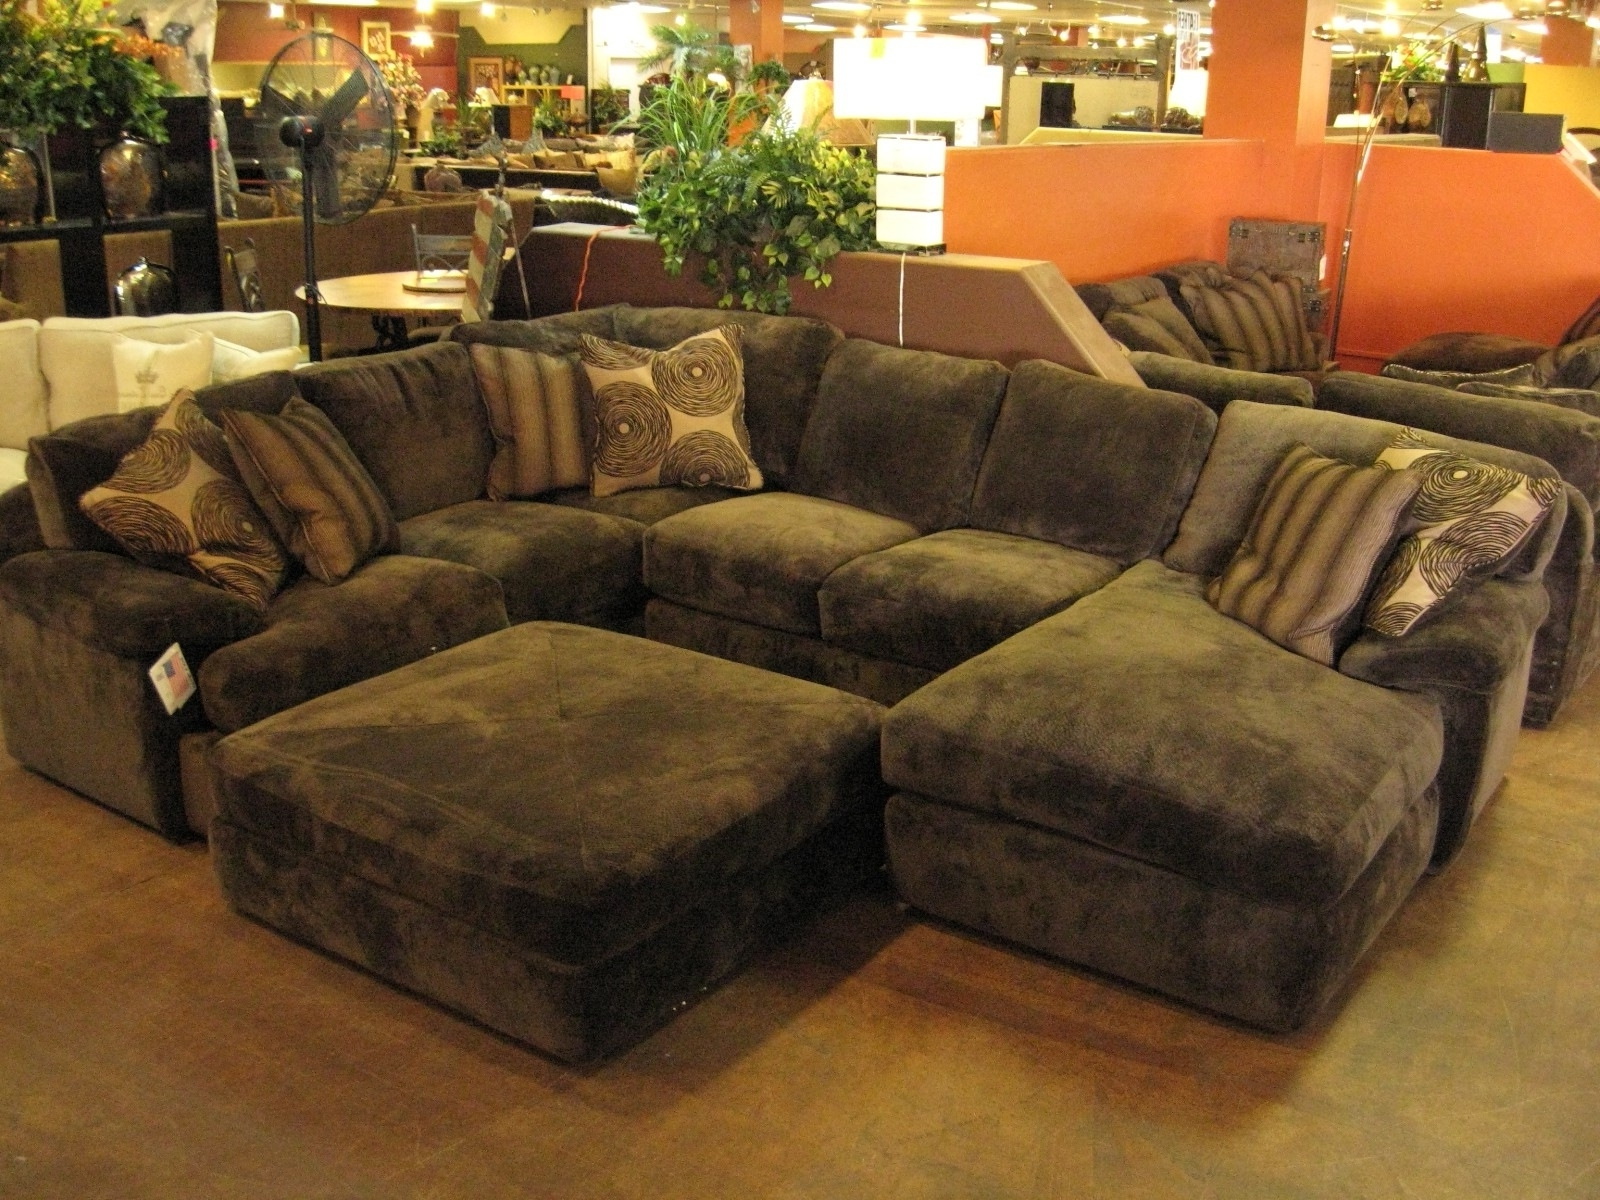 Photos Sectional Sofas Jacksonville Fl – Buildsimplehome With Regard To Well Liked Jacksonville Florida Sectional Sofas (View 13 of 15)